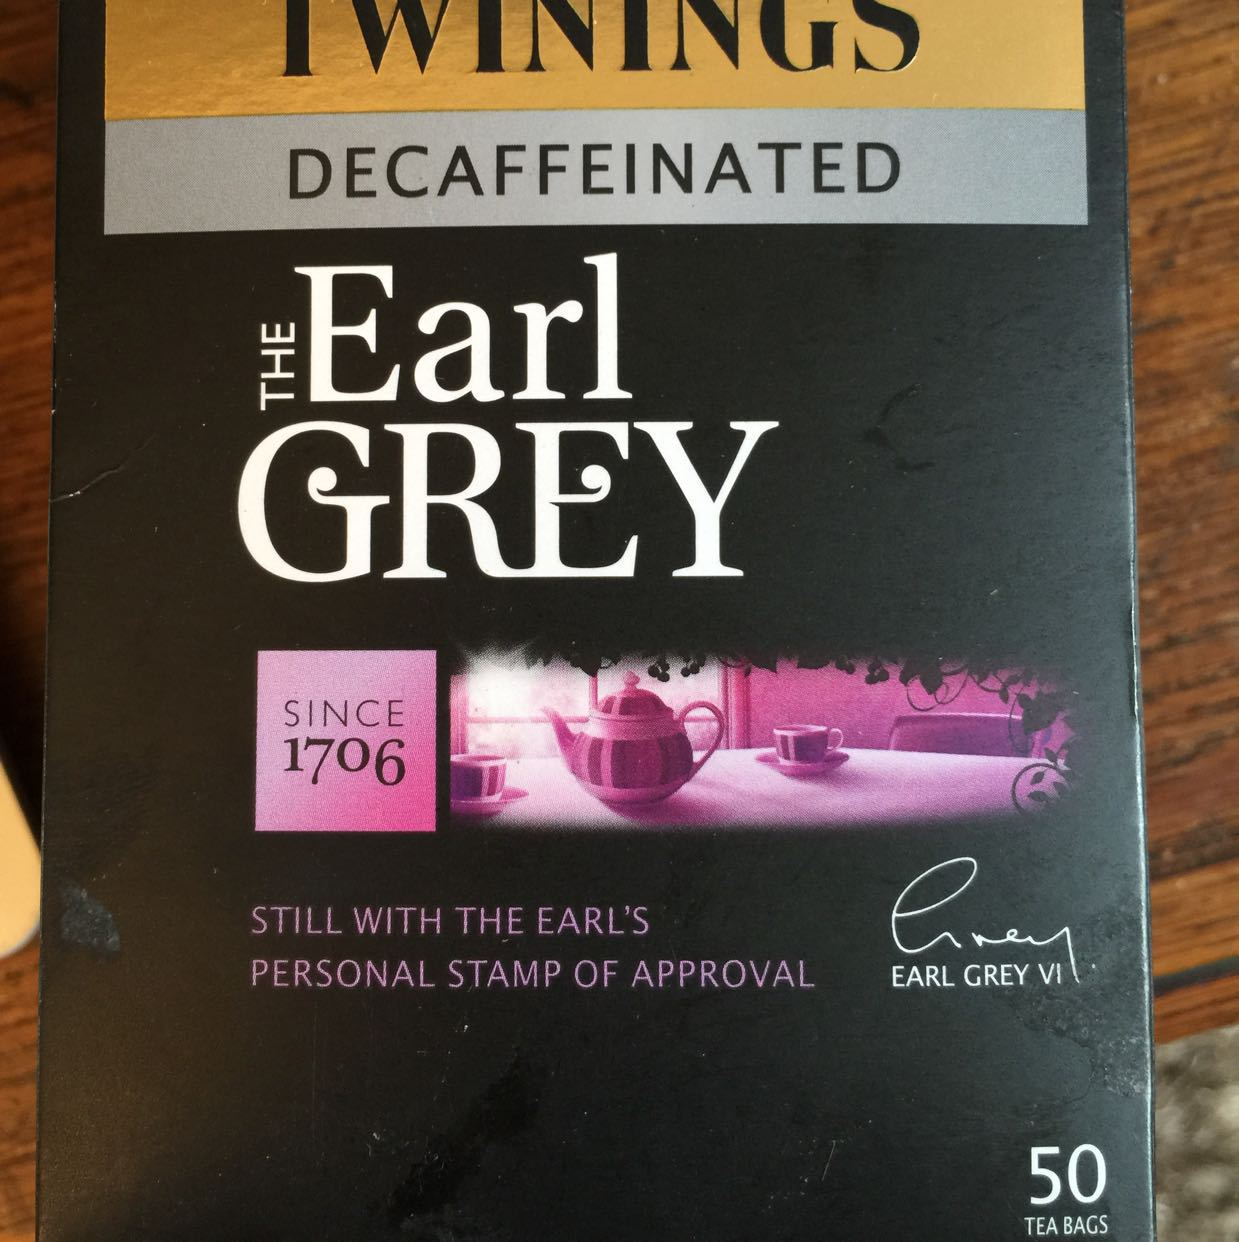 Twinings Decaff Earl Grey Tea Bags